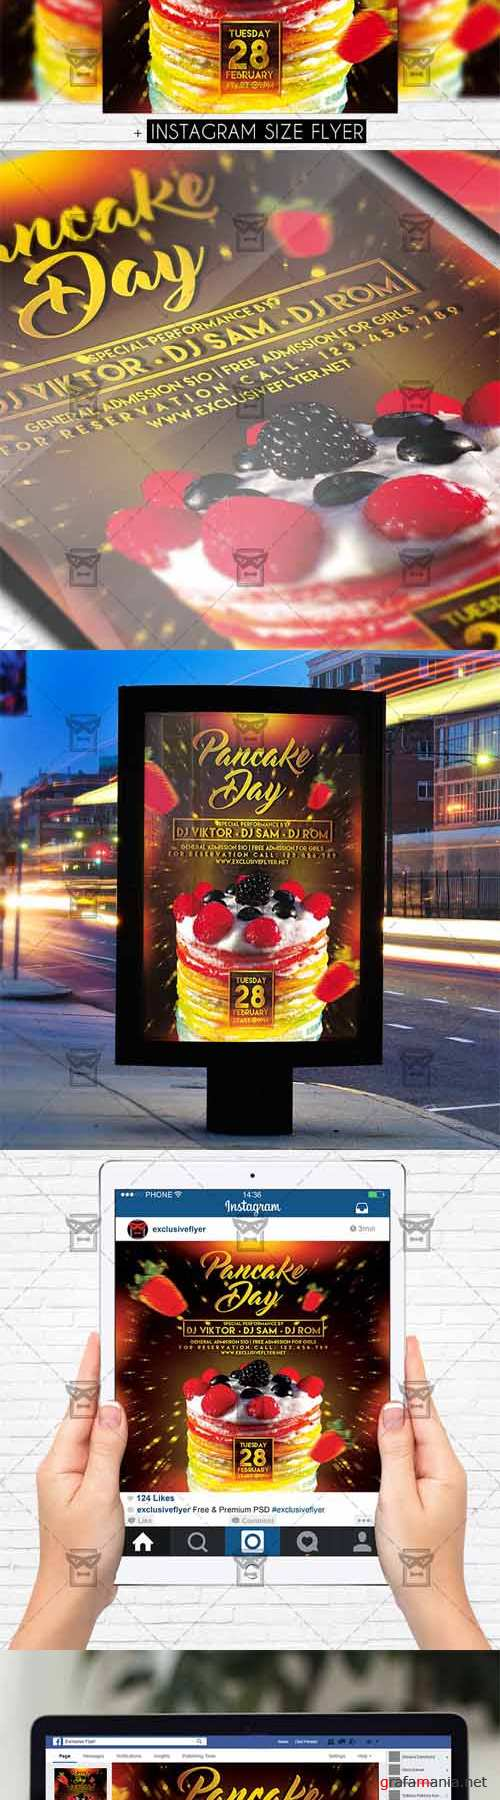 Flyer Template - Pancake Day